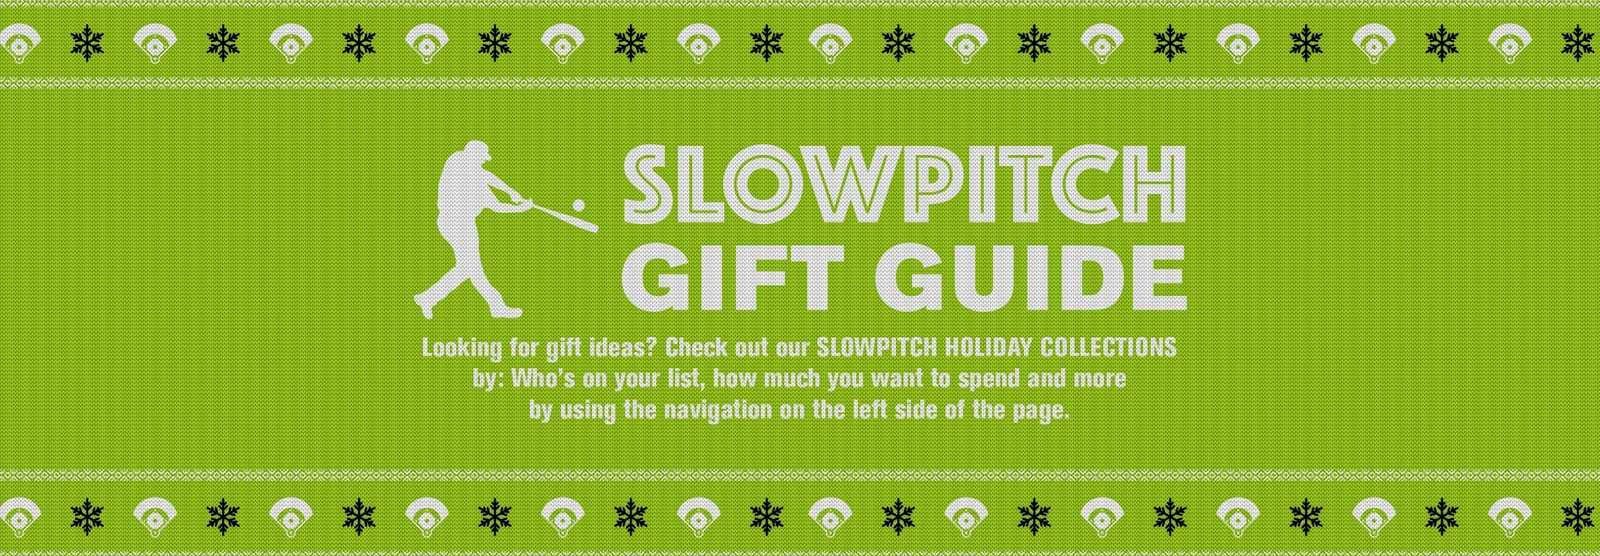 2019-slowpitch-gift-guide